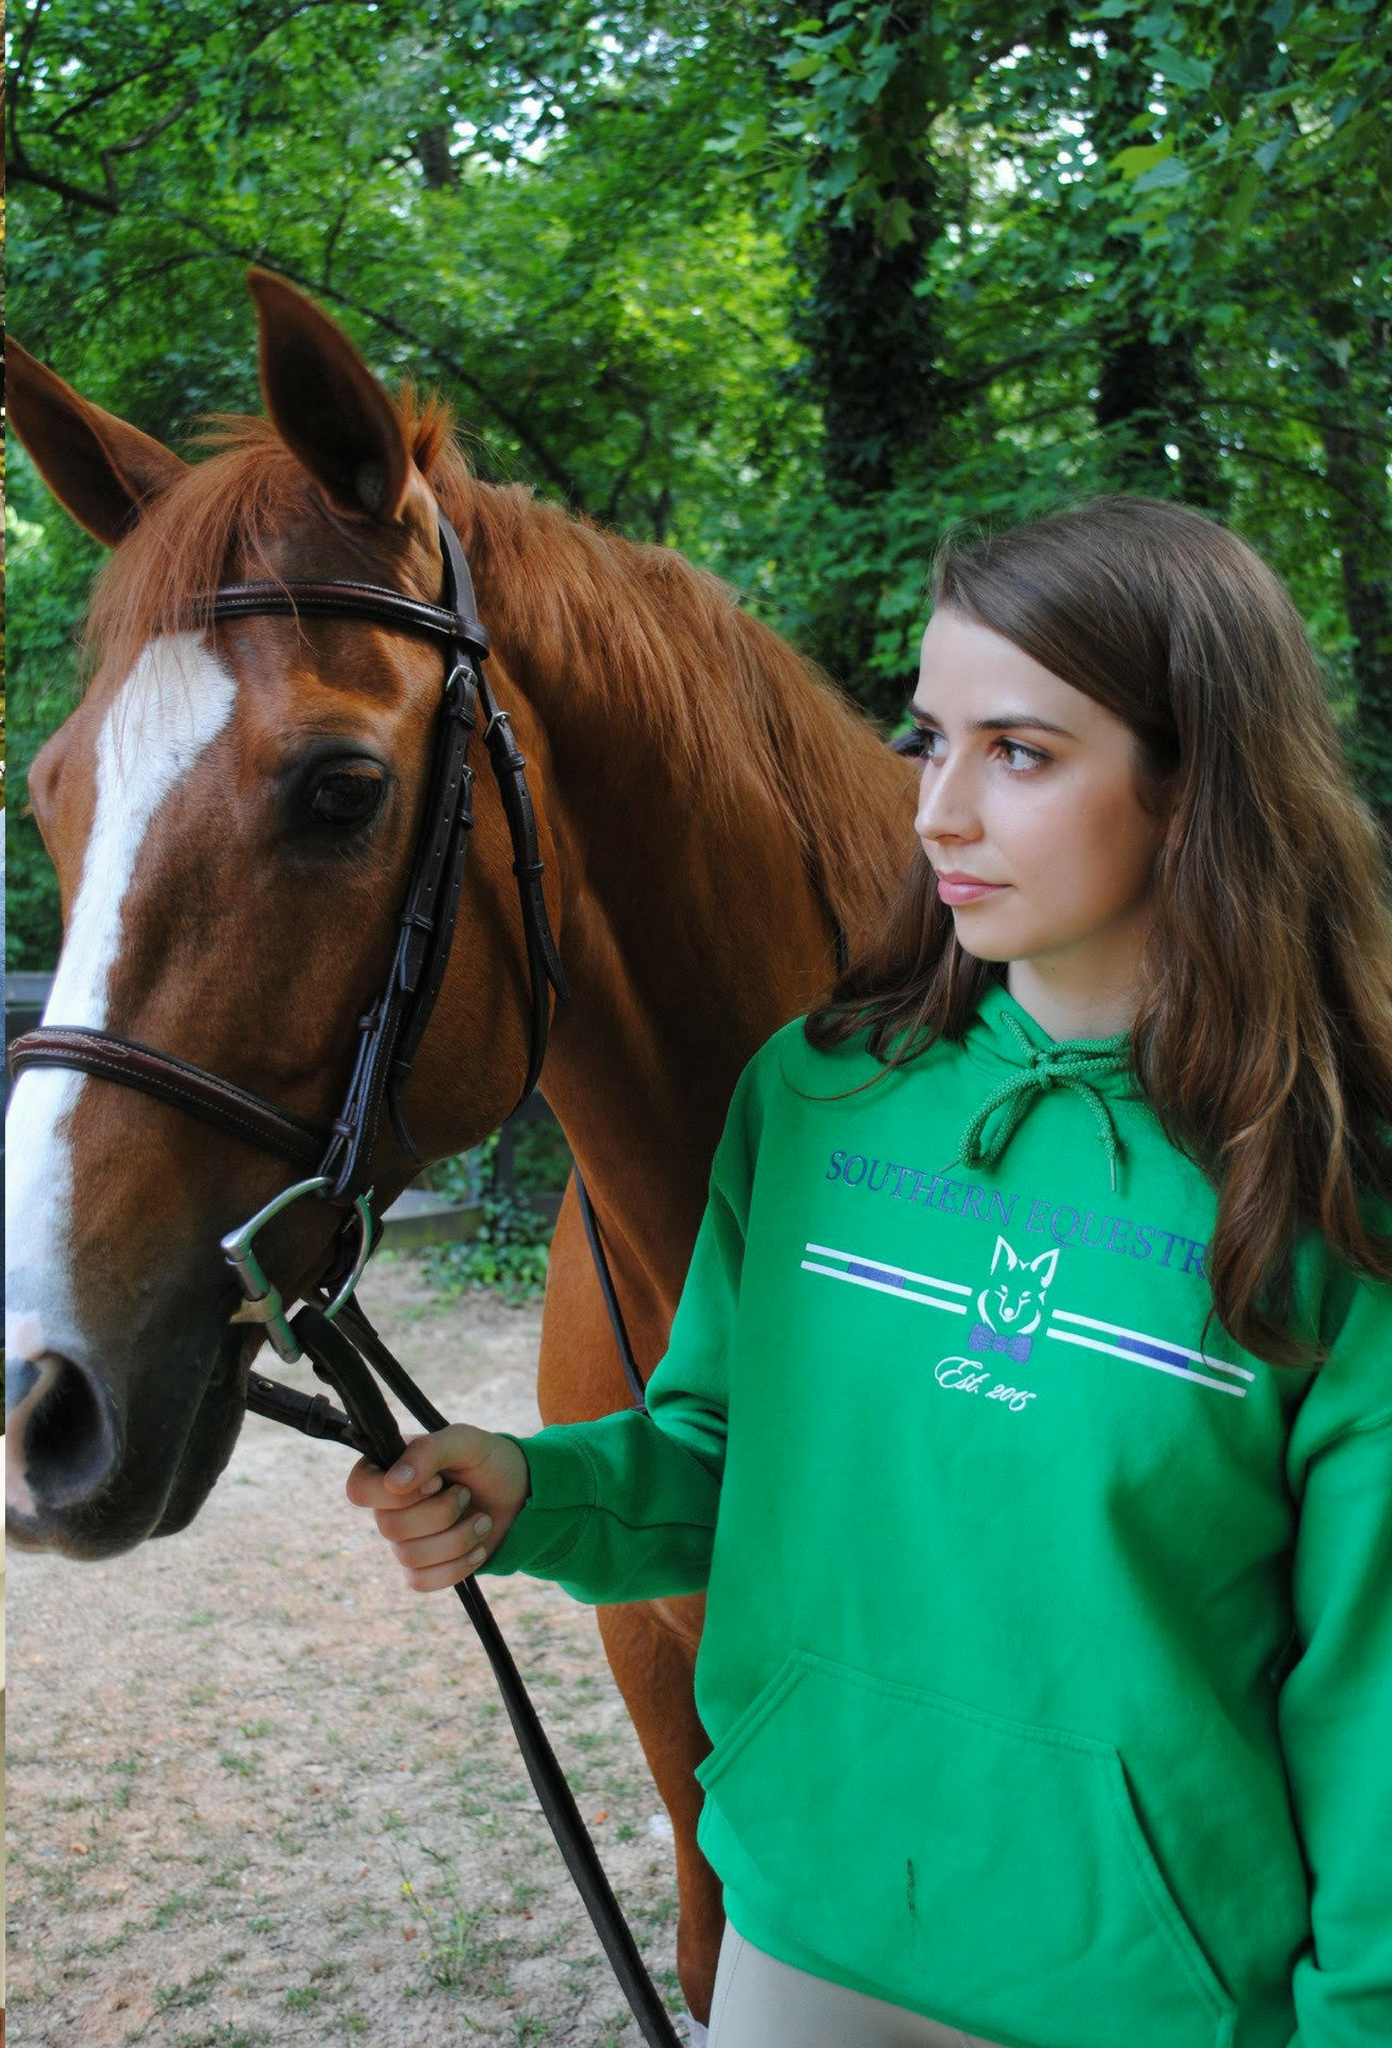 horse shirts for girls, horse apparel, equestrian shirts, riding gear for girls